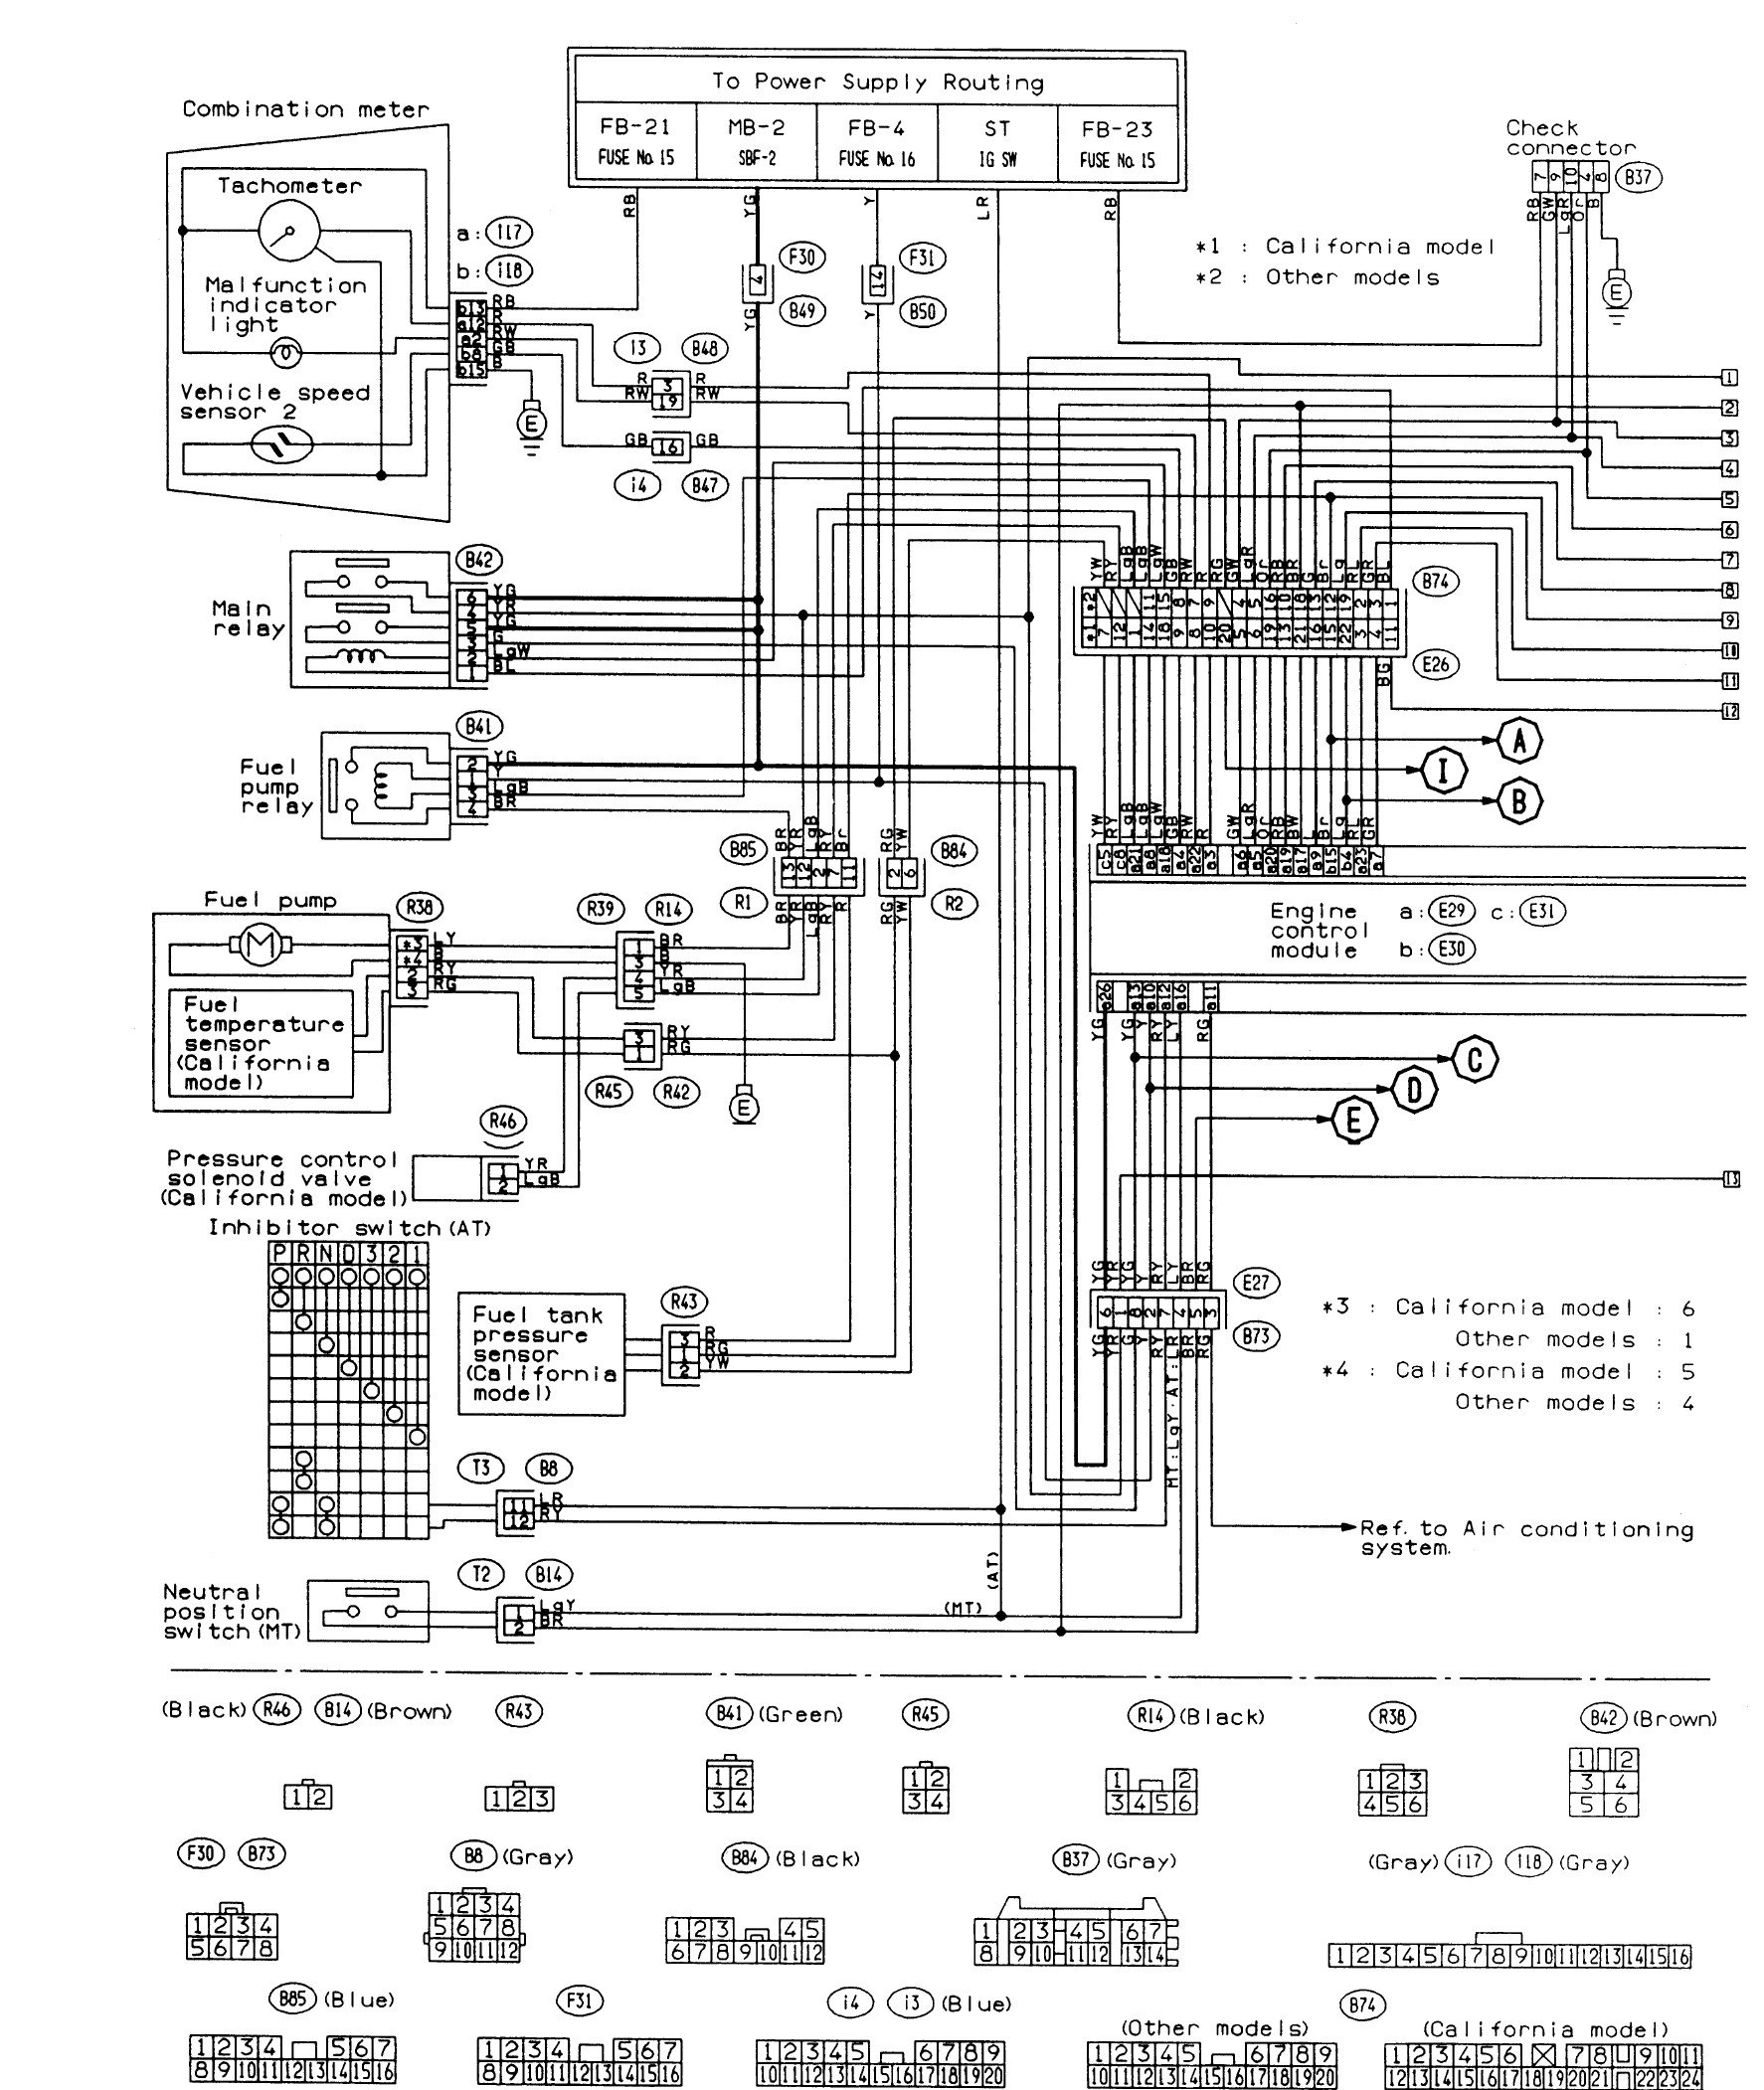 subaru legacy wiring diagram Collection-2002 jeep grand cherokee  transmission wiring diagram refrence 2008 rh. DOWNLOAD. Wiring Diagram ...